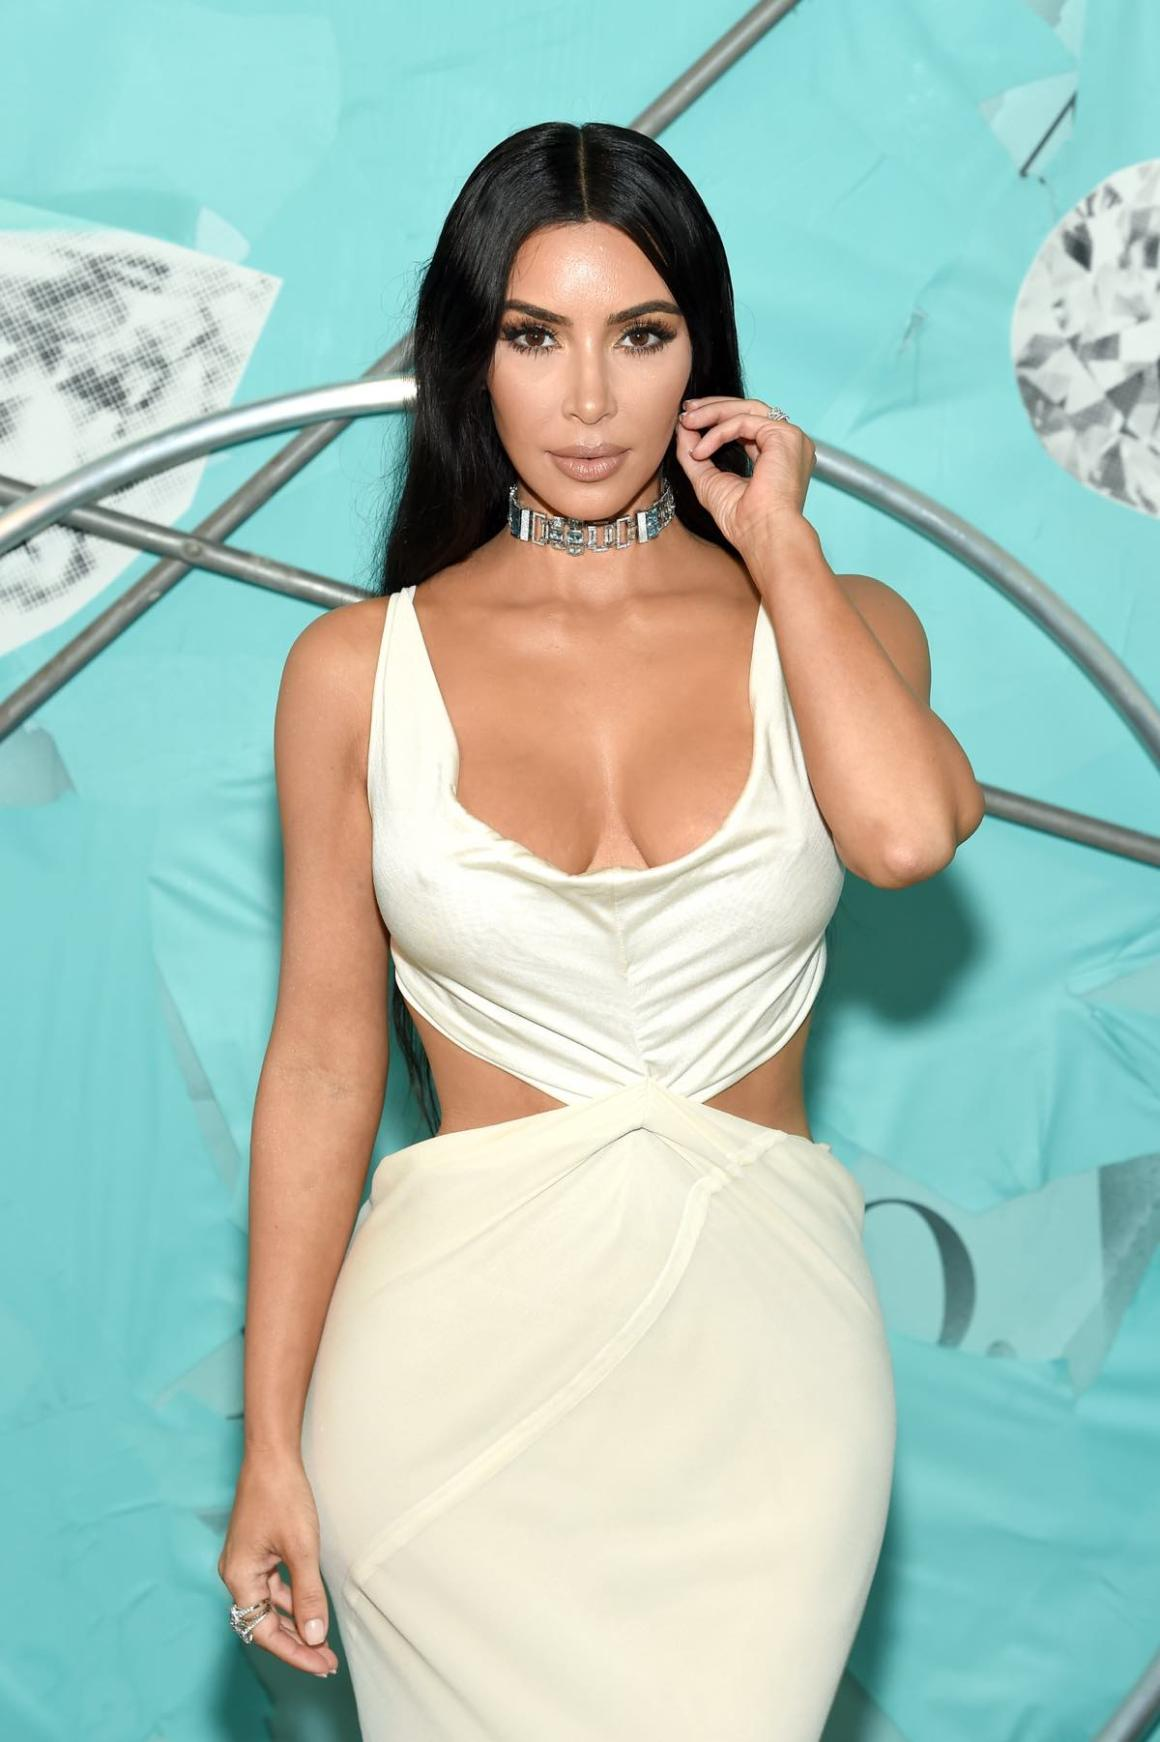 Kim Kardashian attends Tiffany & Co. Celebrates 2018 Tiffany Blue Book Collection, THE FOUR SEASONS OF TIFFANY - Inside